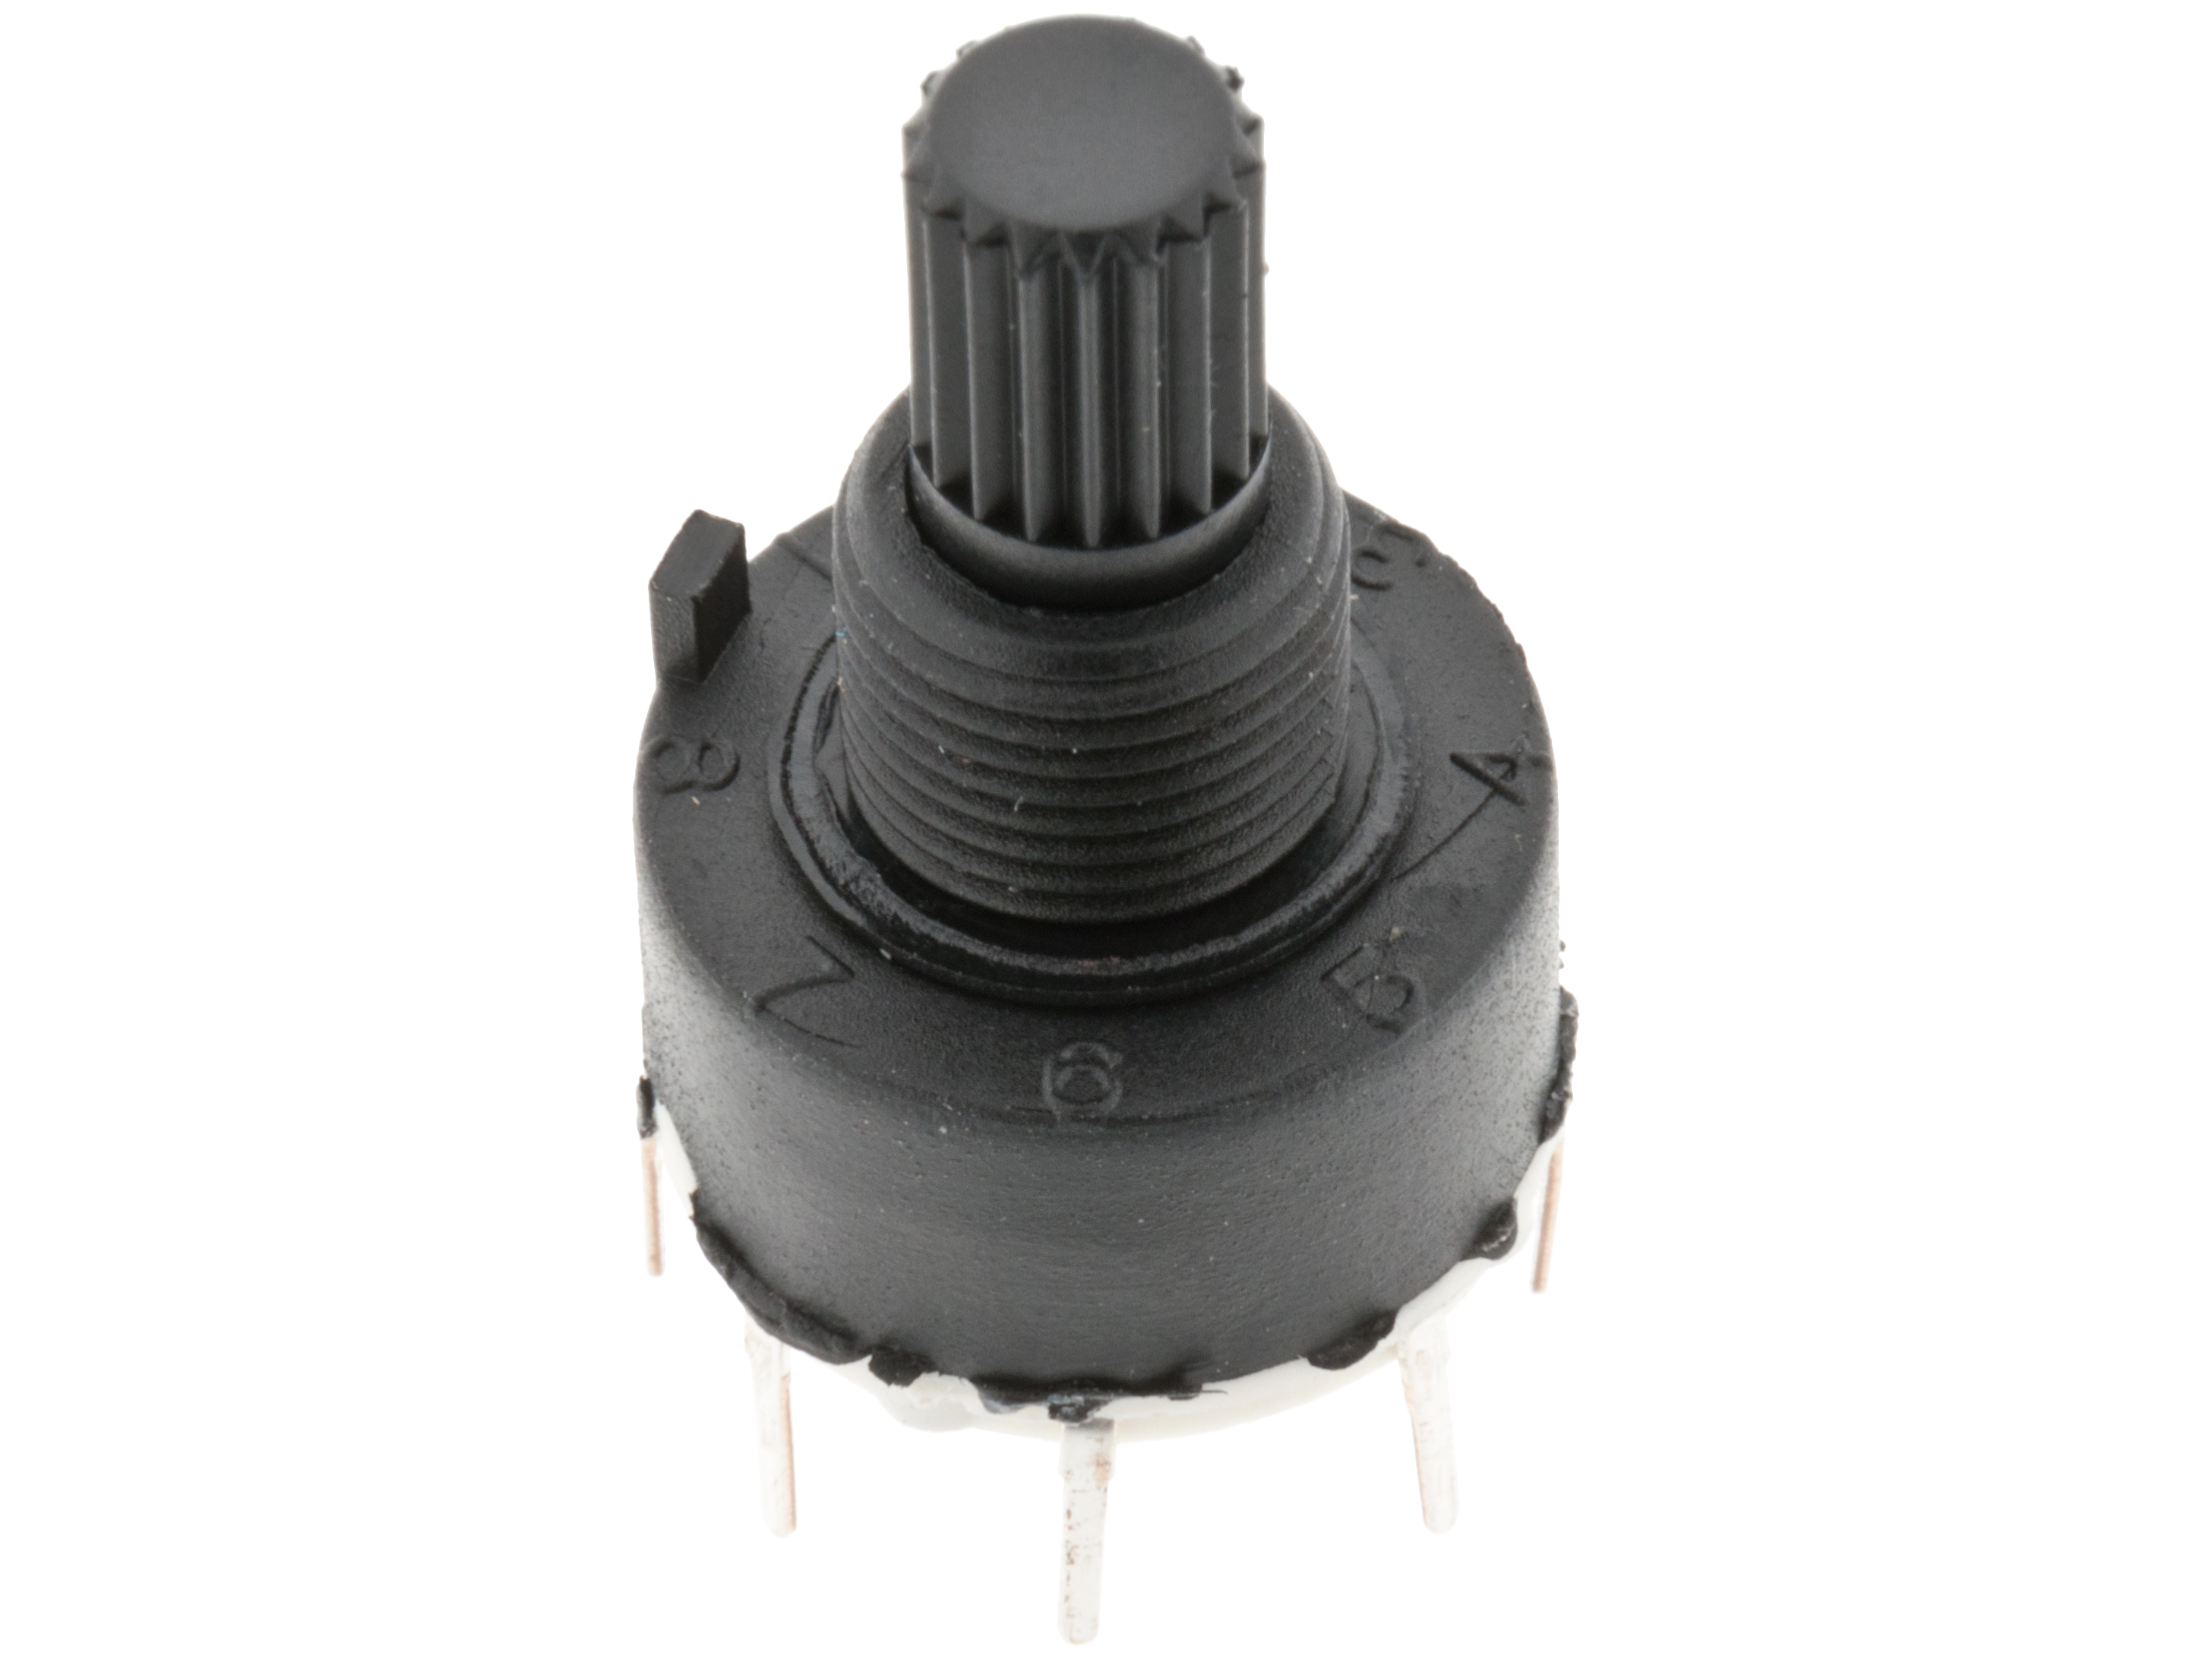 Buy Rotary Switch Mini 1 P 8 Pos Pcb At The Right Price Electrokit Dip Wiring Diagram Home Switches